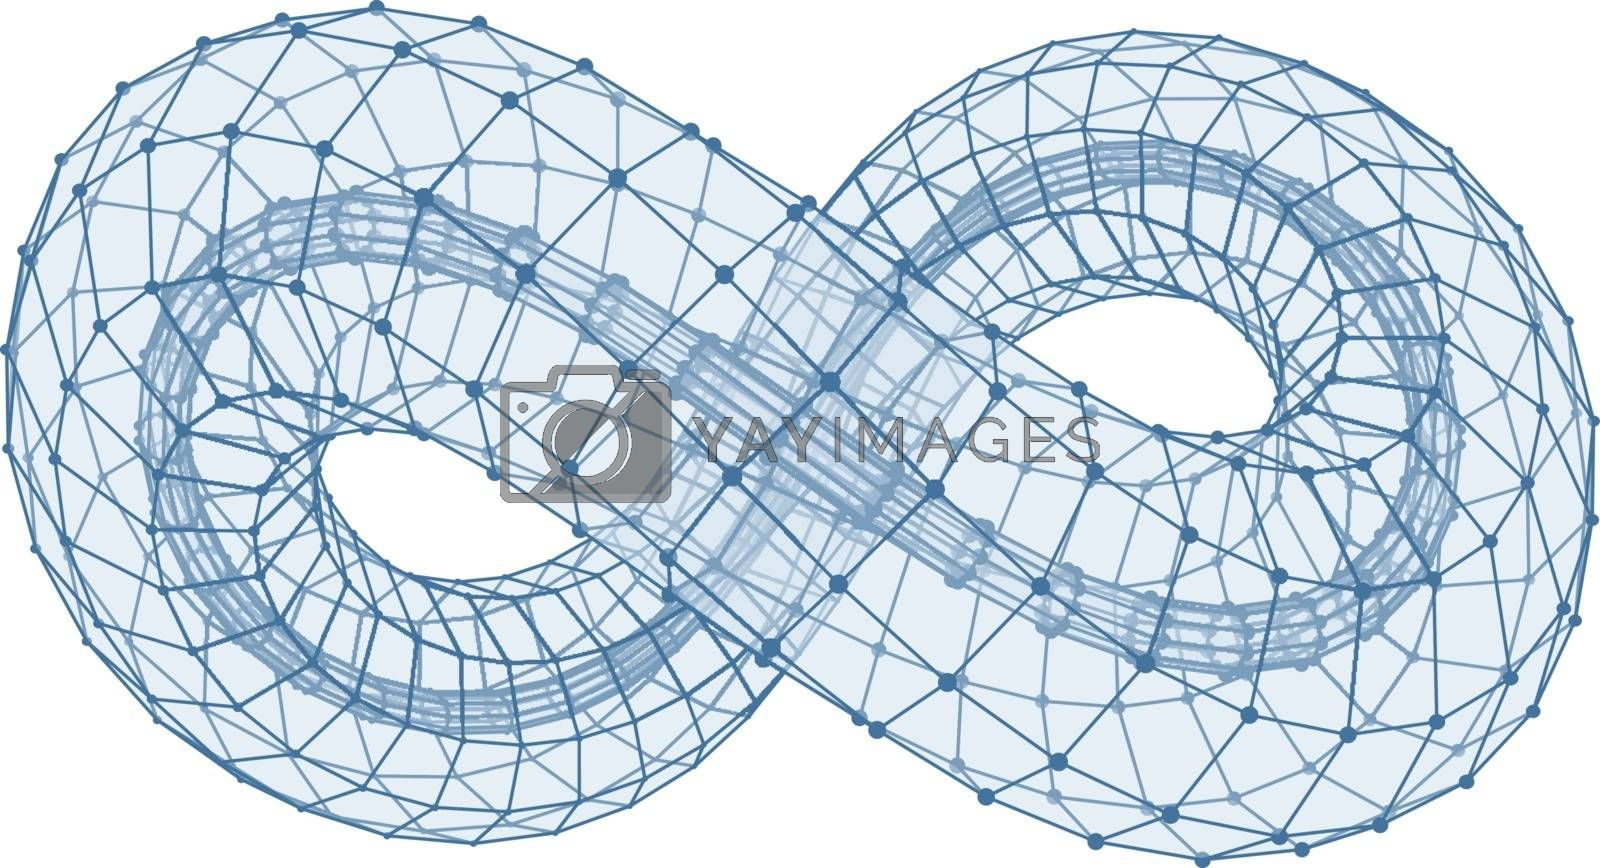 Infinity Symbol. Can Be Used As Design Element, Emblem, Icon. 3d Vector Illustration.